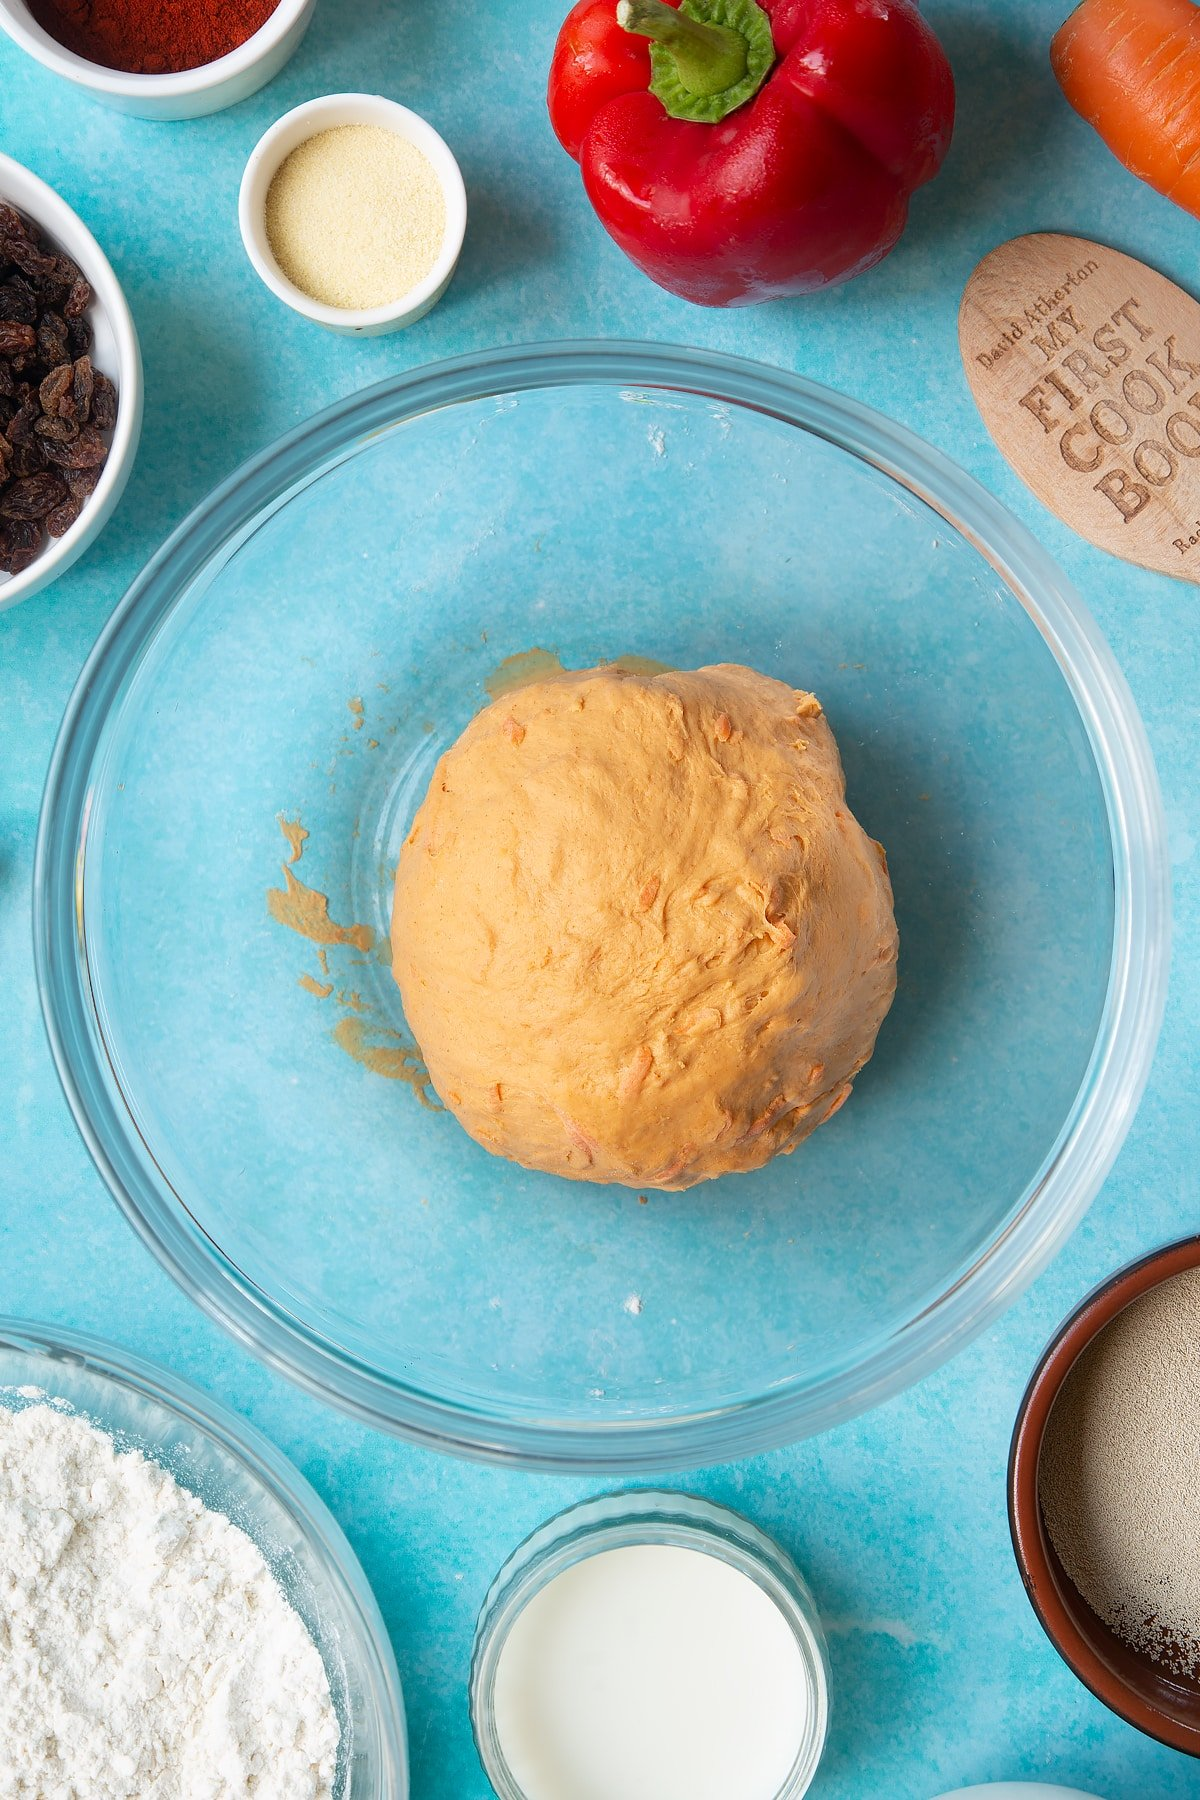 Kneaded paprika and carrot bread dough in a bowl. Ingredients to make bread snakes surround the bowl.